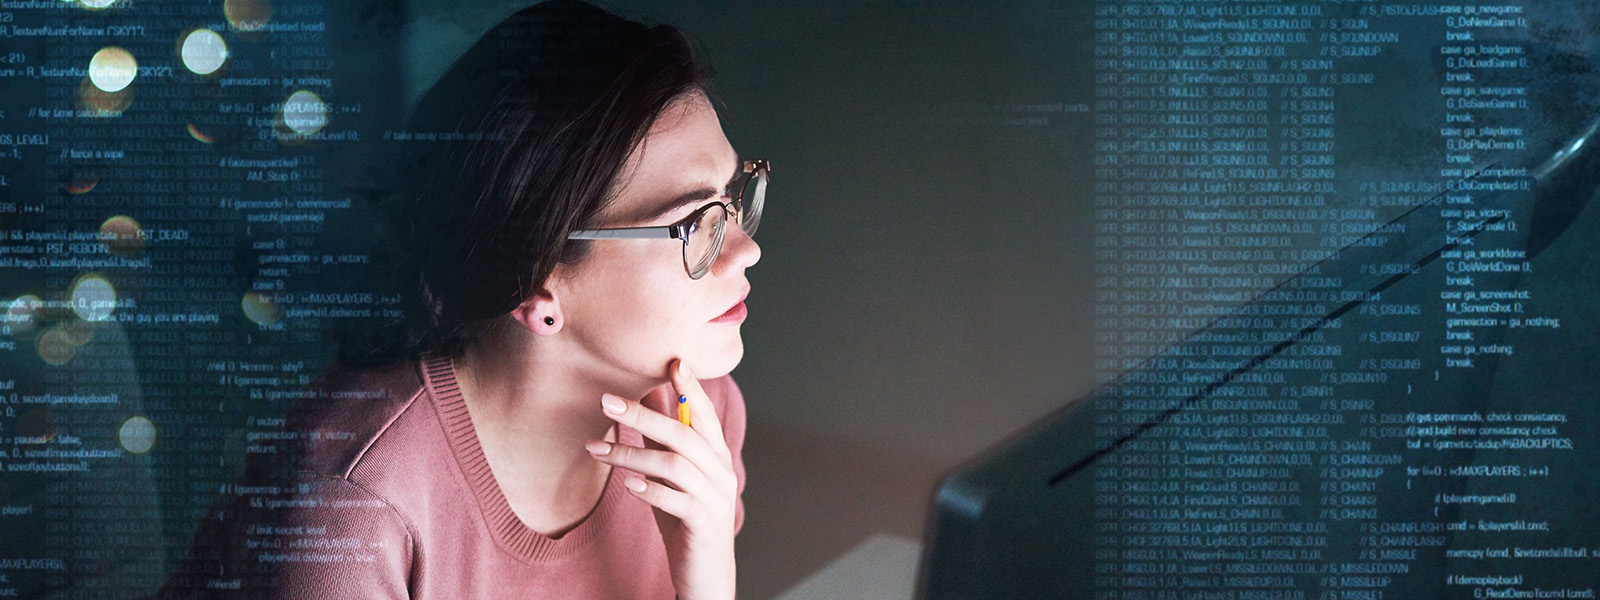 Woman with left hand on chin looking at data on computer screen